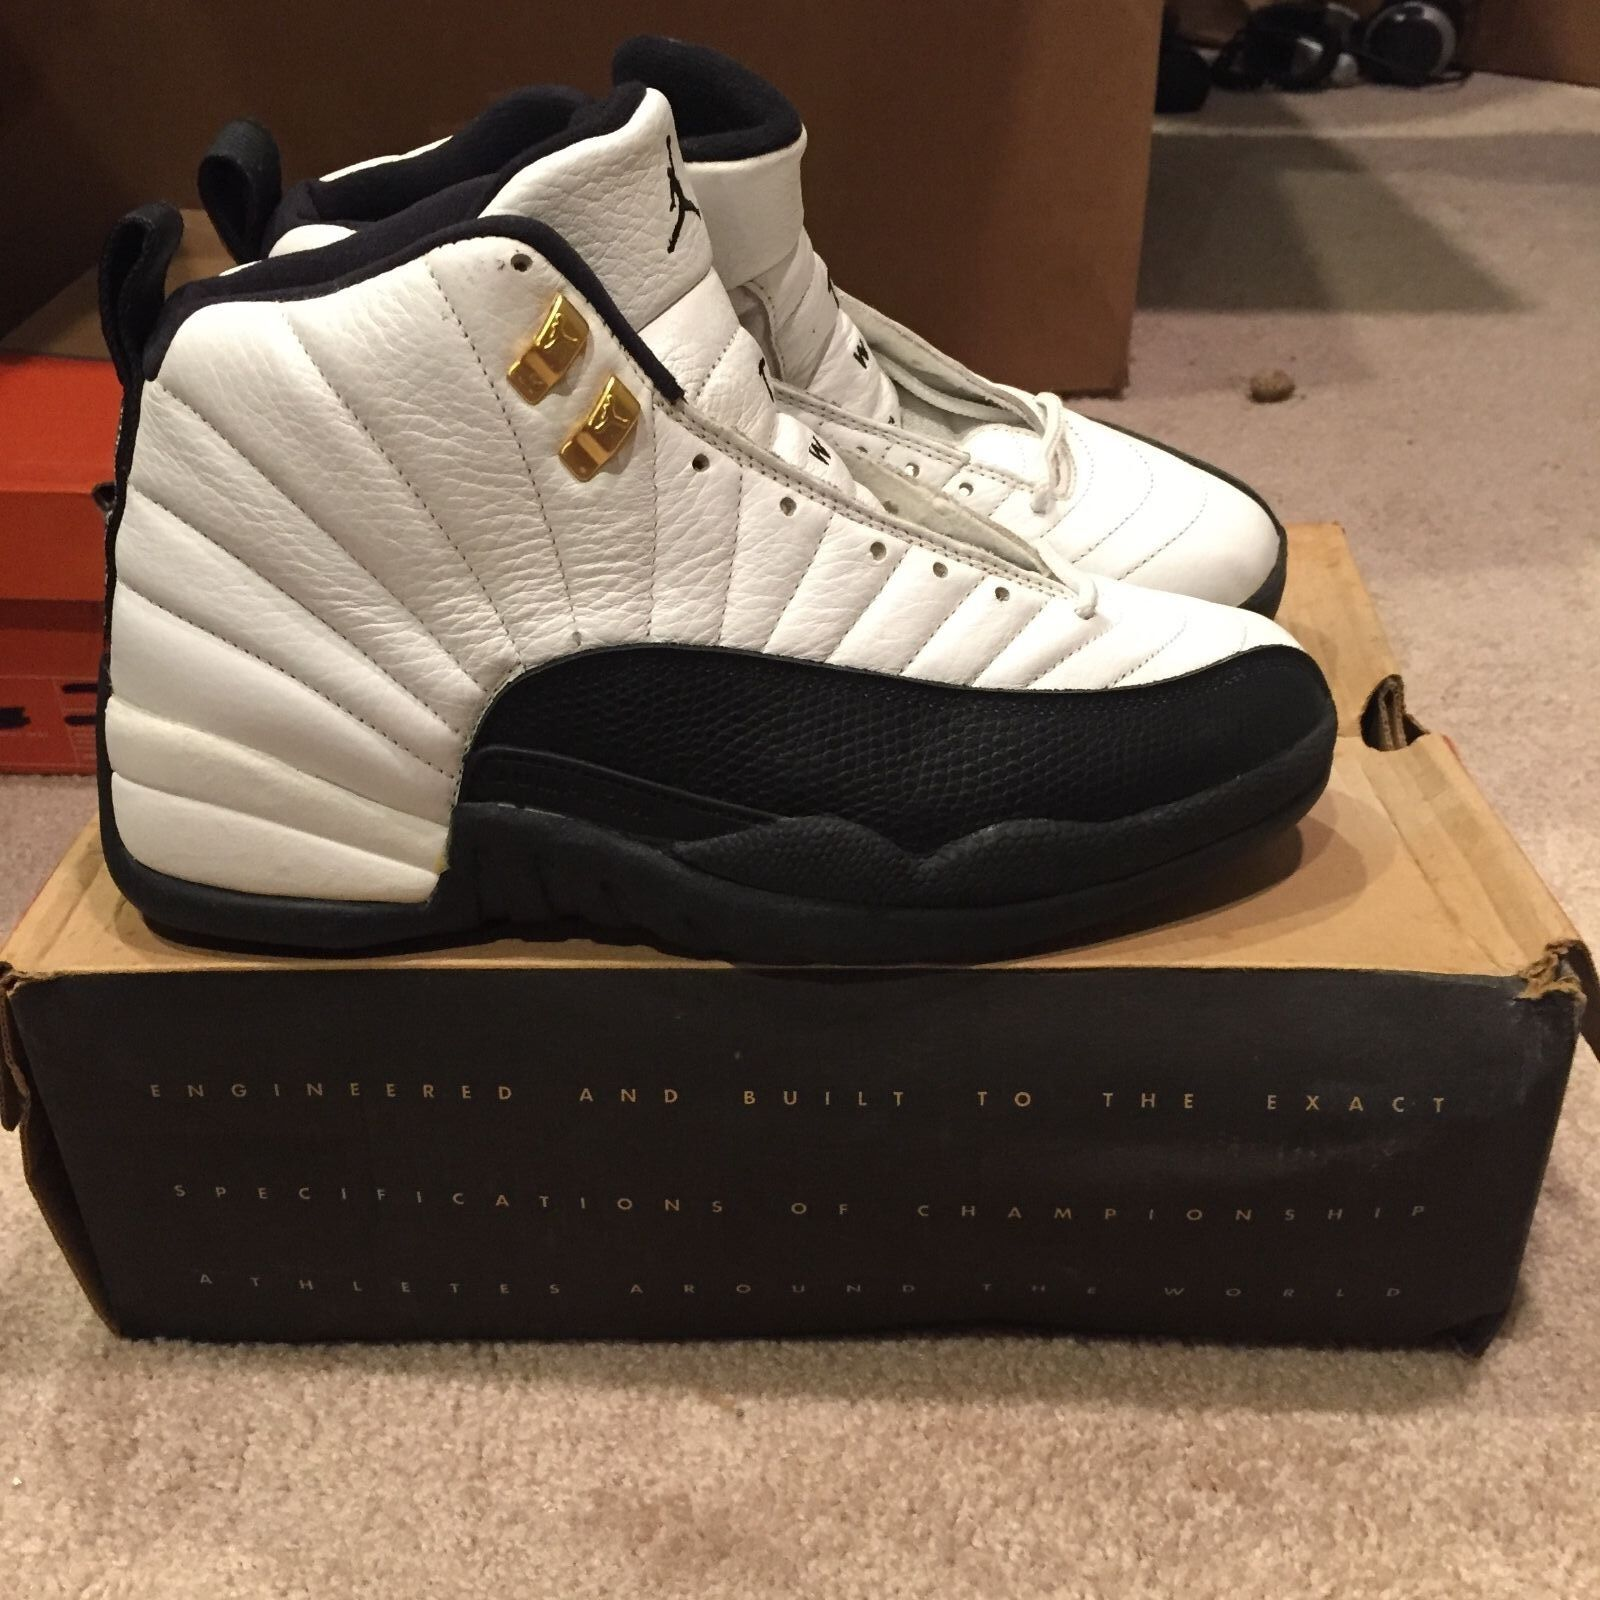 Nike Air Jordan XII 12 Taxi 1996 OG DS NIB Price reduction Seasonal clearance sale